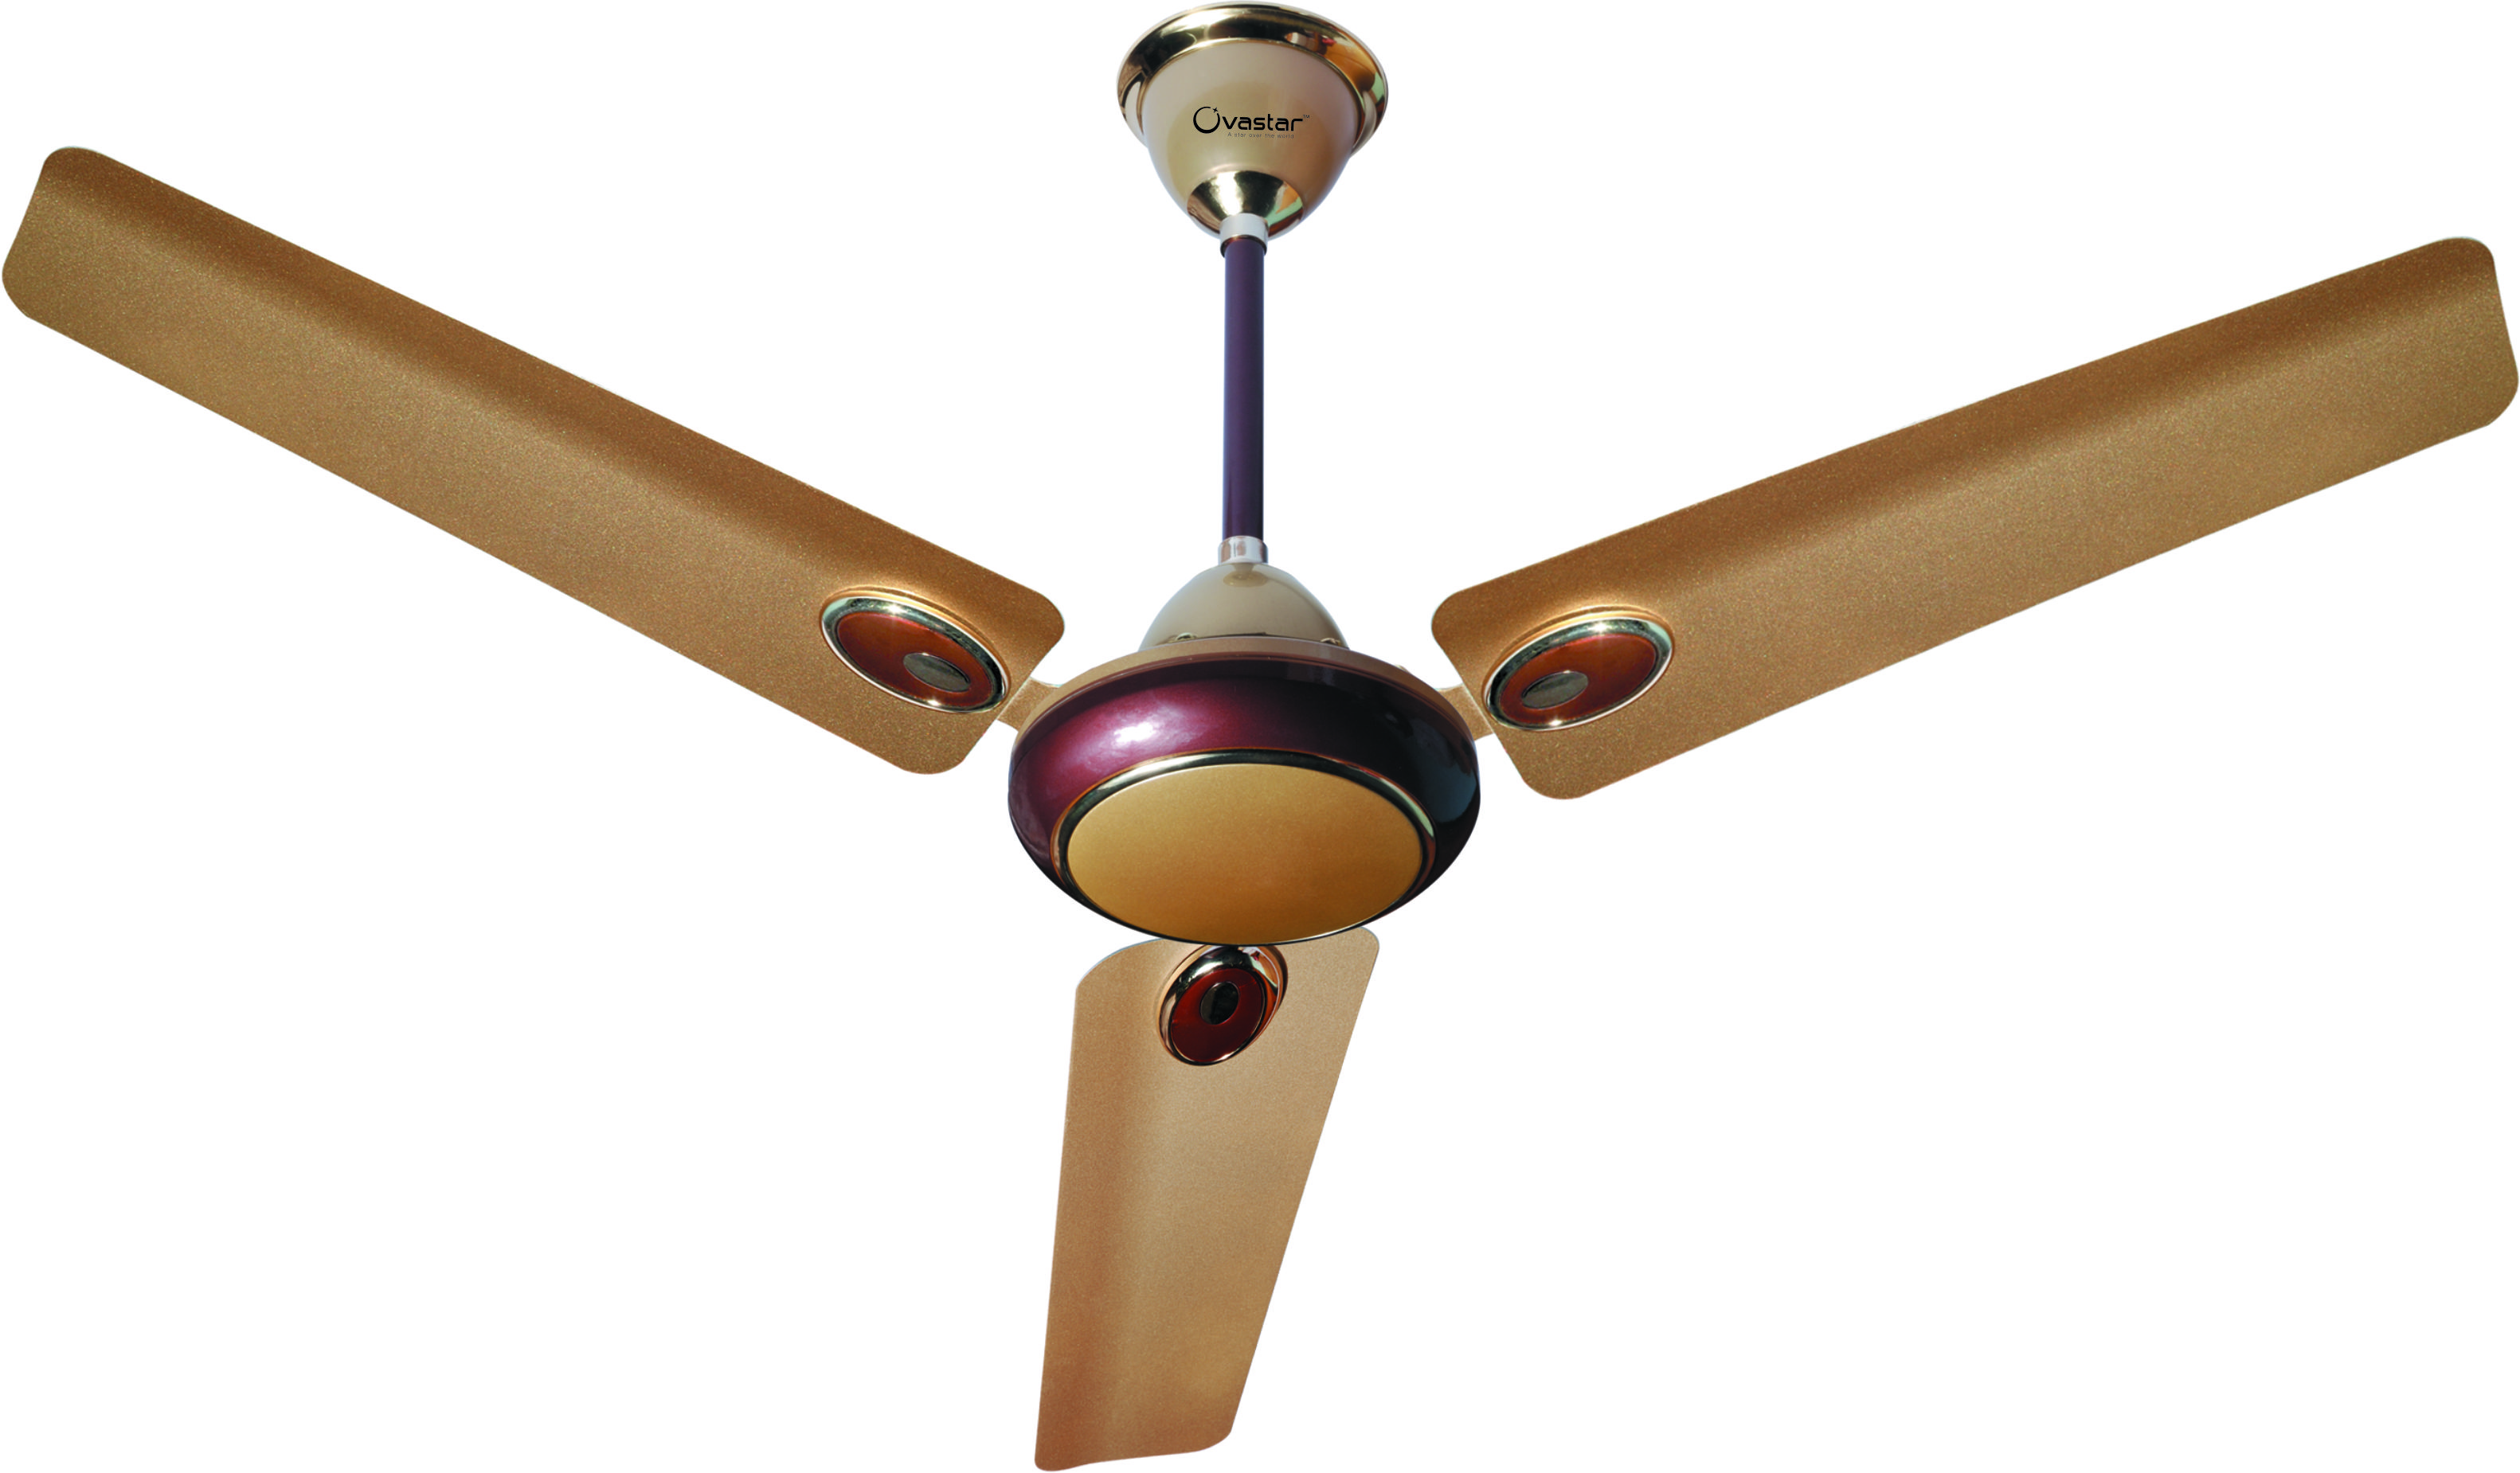 Cool Breeze 3 Blade (1200mm) Ceiling Fan